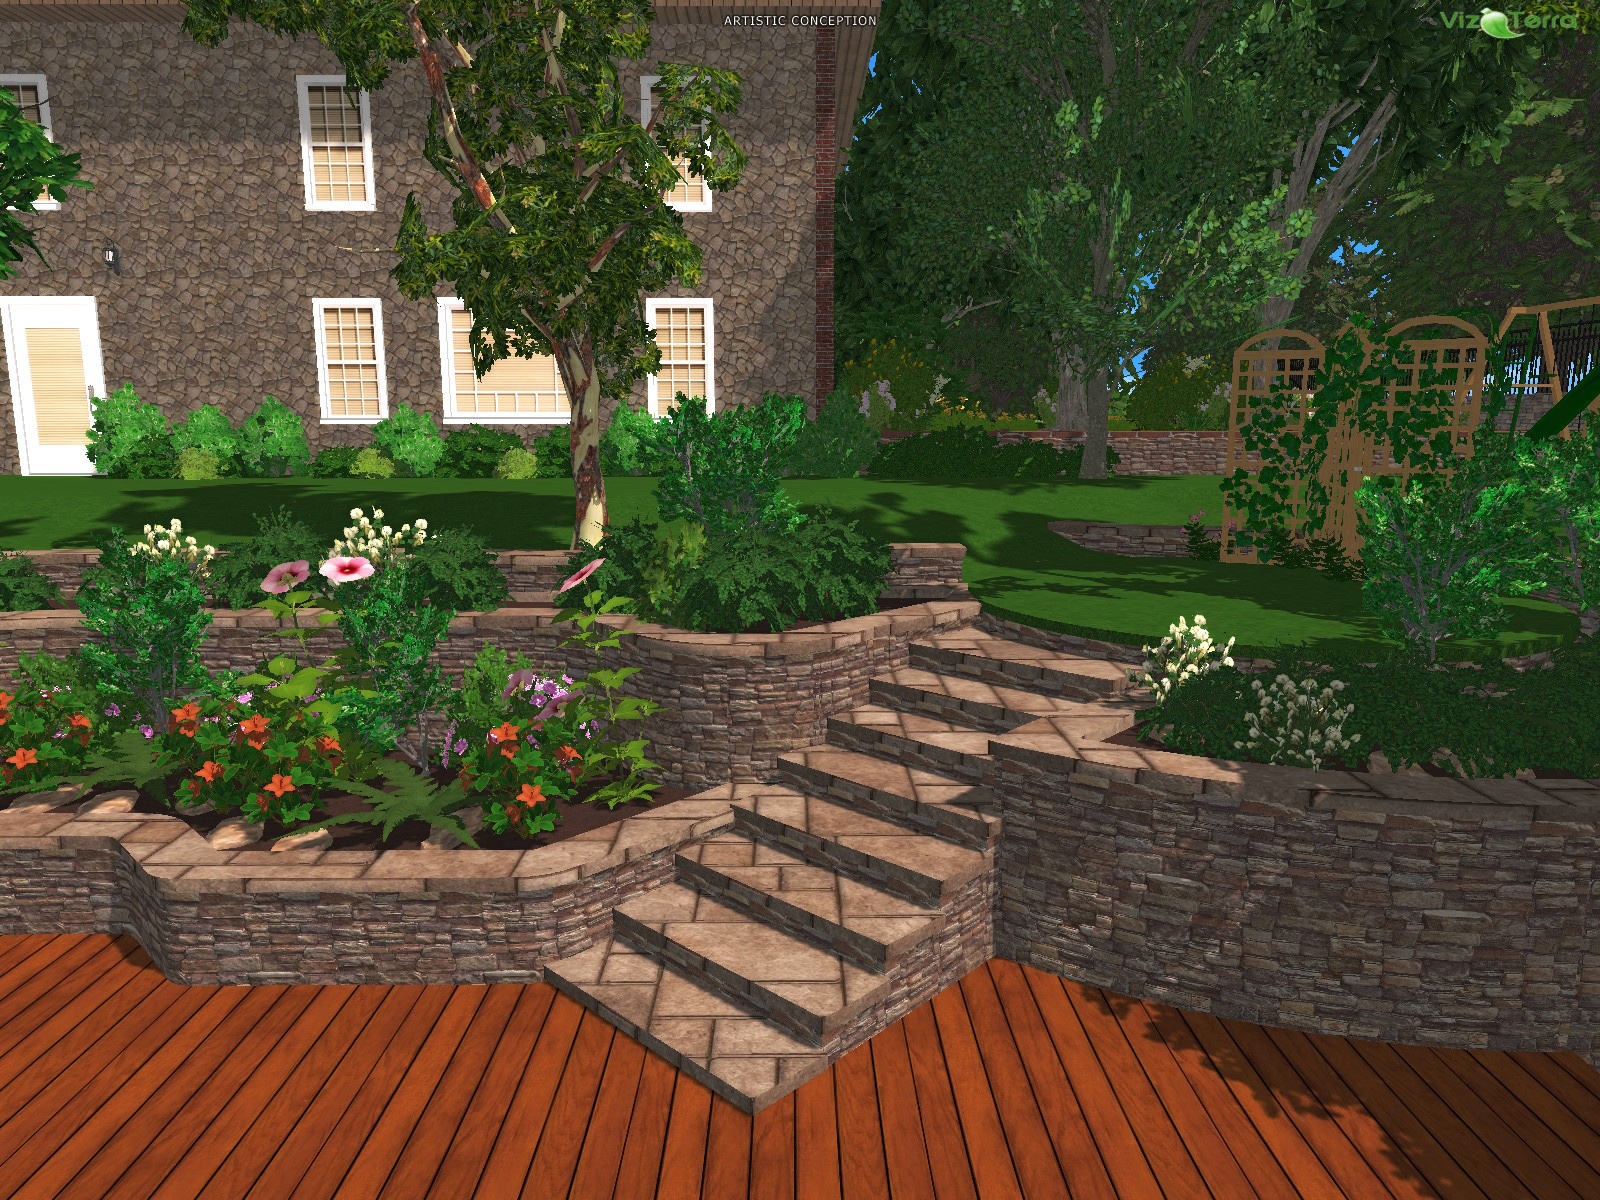 Indi scaping design design your own backyard landscape for Designing your yard landscape